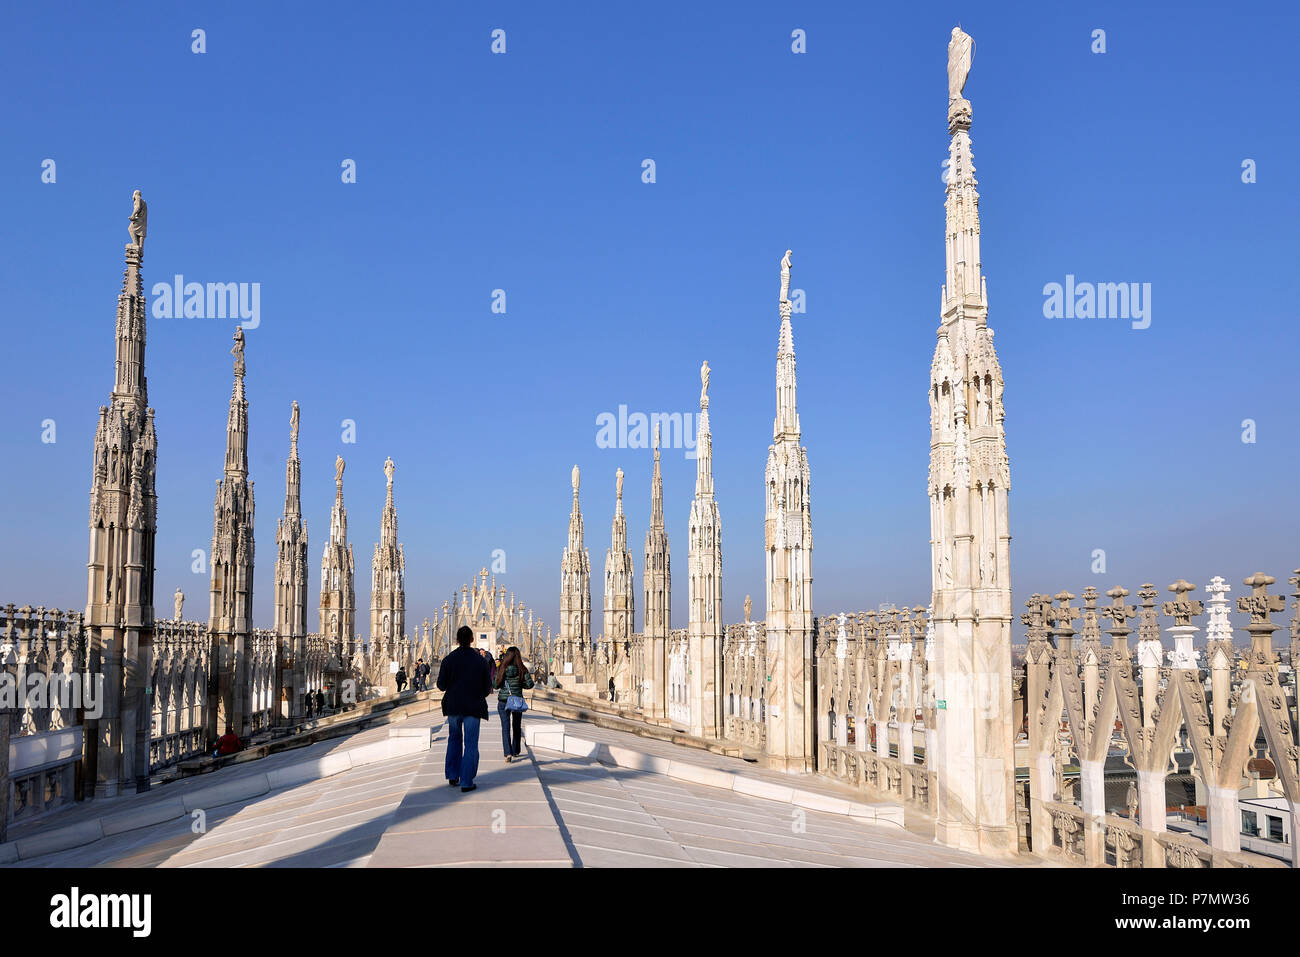 Italy, Lombardy, Milan, Piazza del Duomo, the Cathedral of the Nativity of the Holy Virgin (Duomo) built between the 14th century and the 19th century is the third largest church in the world, spires and statues of the Duomo seen from the terrace on the roof of the cathedral Stock Photo